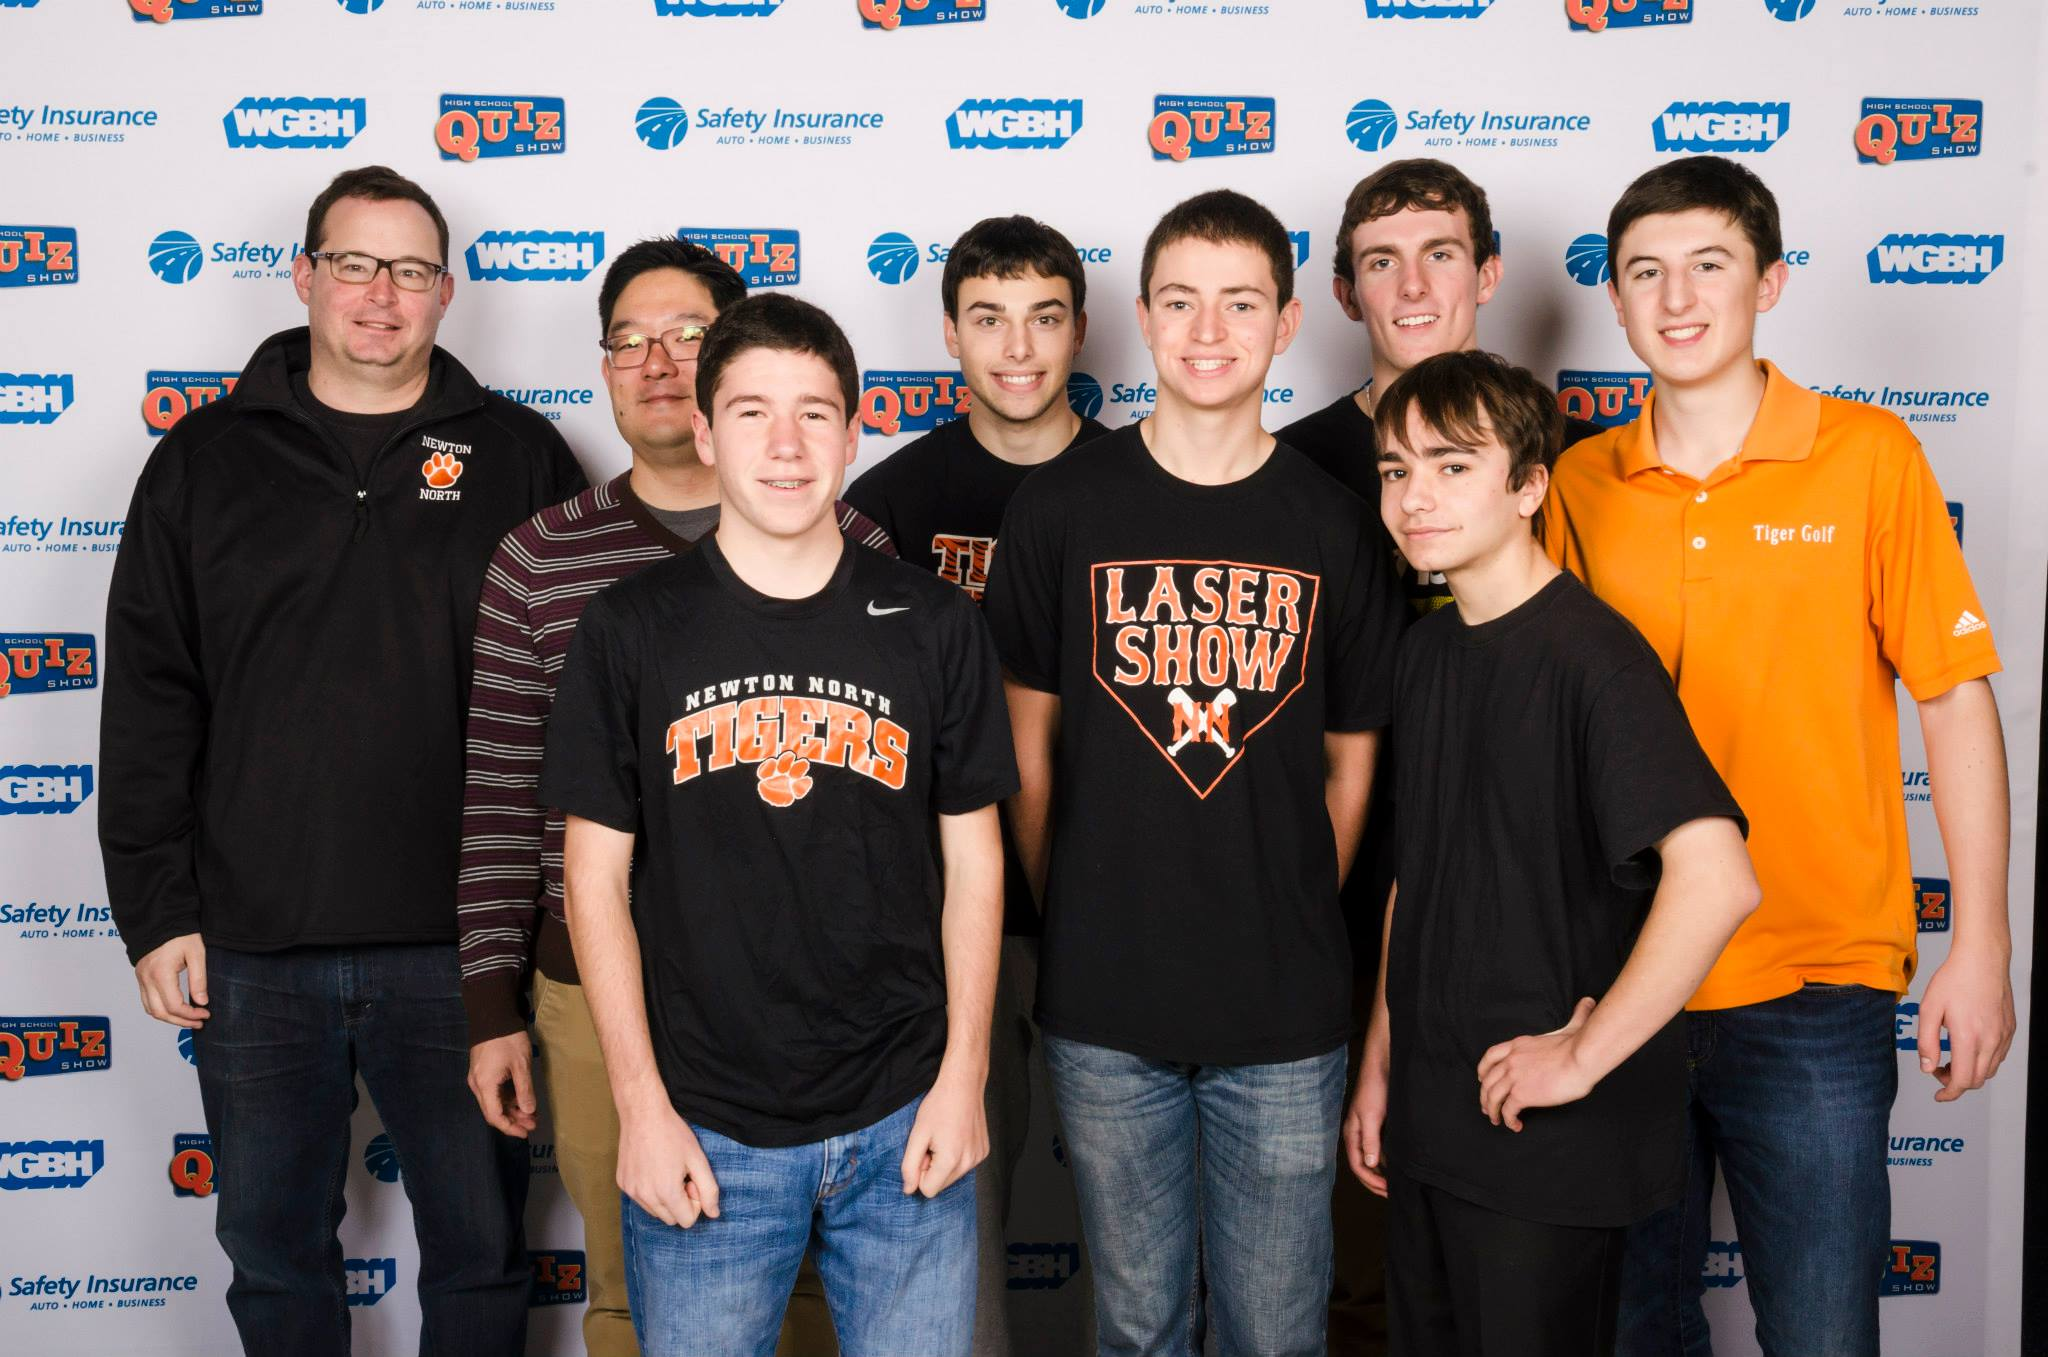 This year's High School Quiz Show team on the set of WGBH. Photo courtesy WGBH.